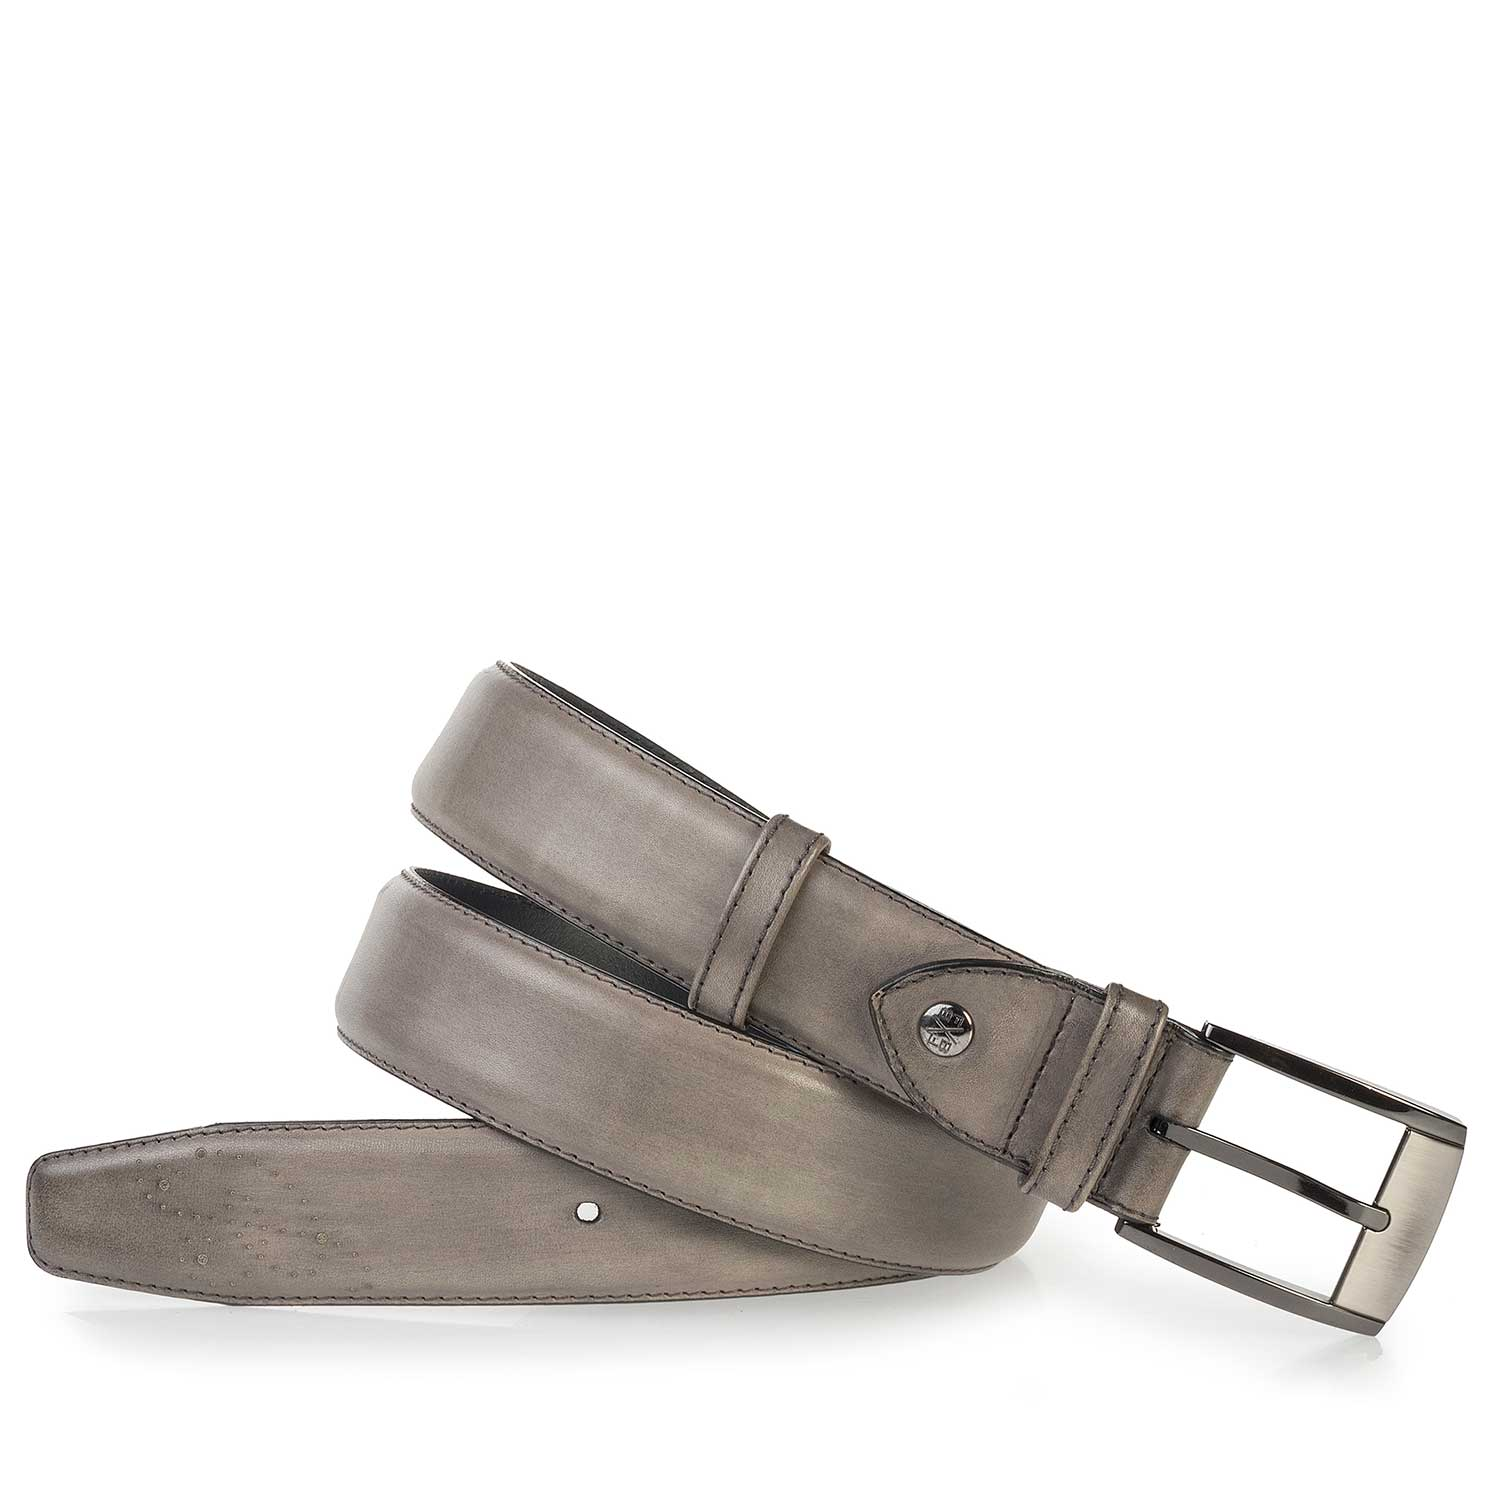 75177/00 - Taupe-coloured, perforated leather belt